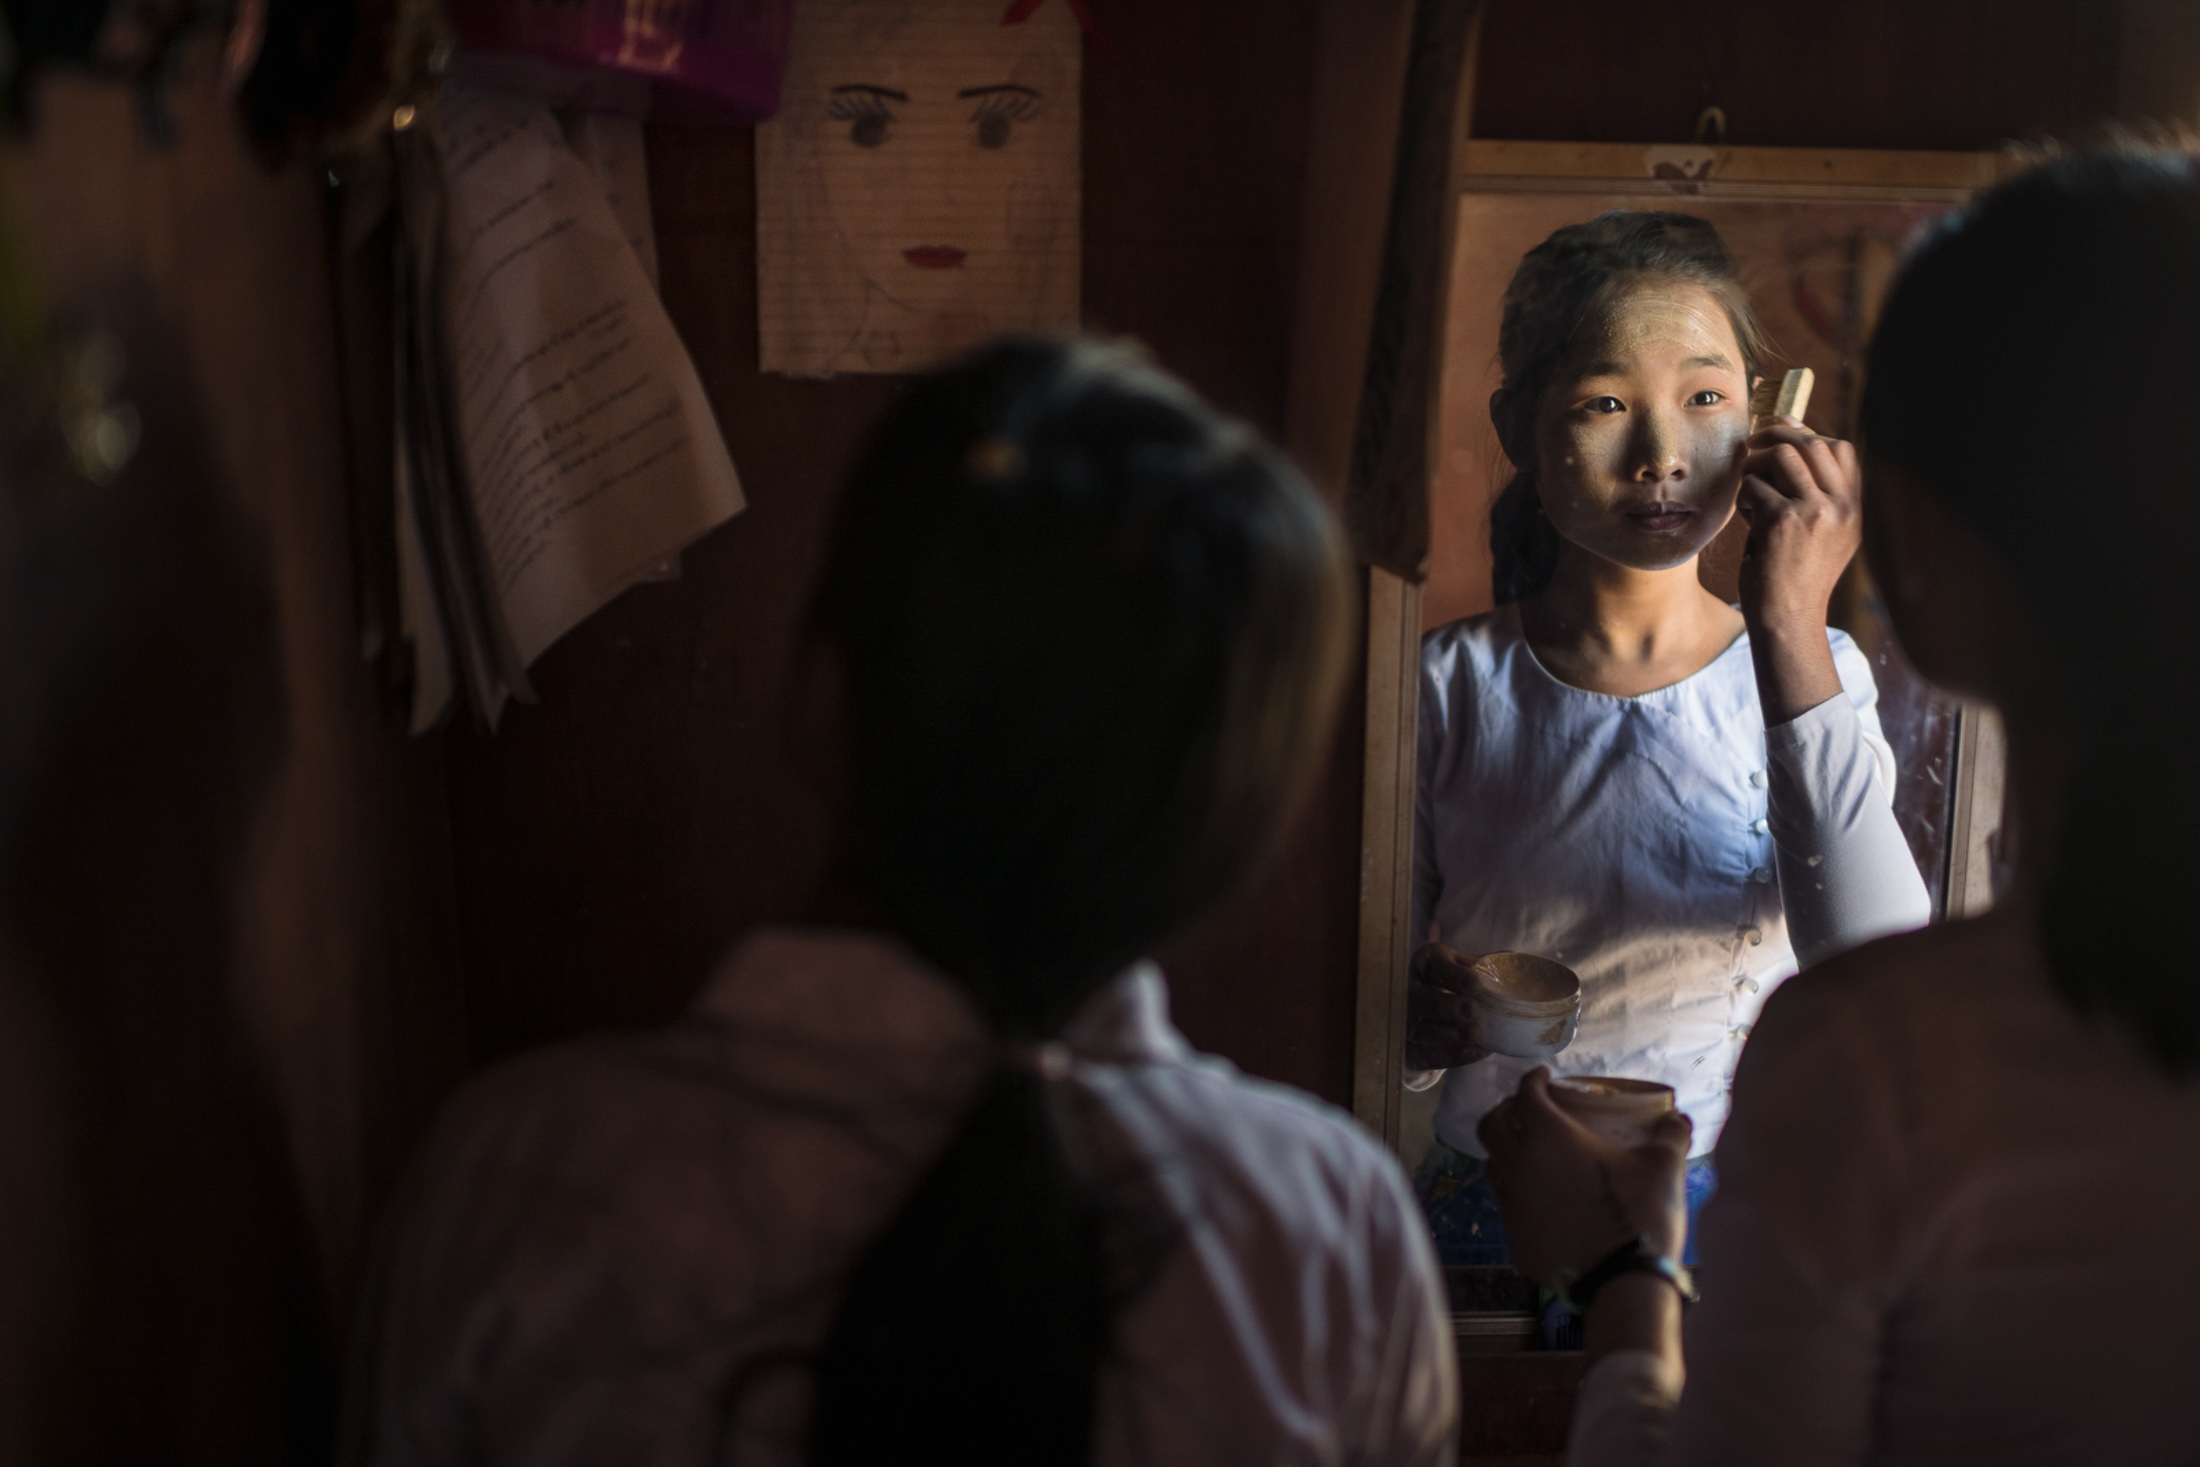 Nu Mai and Bawk Ja, 15, put on Thanaka during the school lunch break. Thanaka is a traditional cosmetic paste made from ground bark, used by women and girls all over Myanmar.